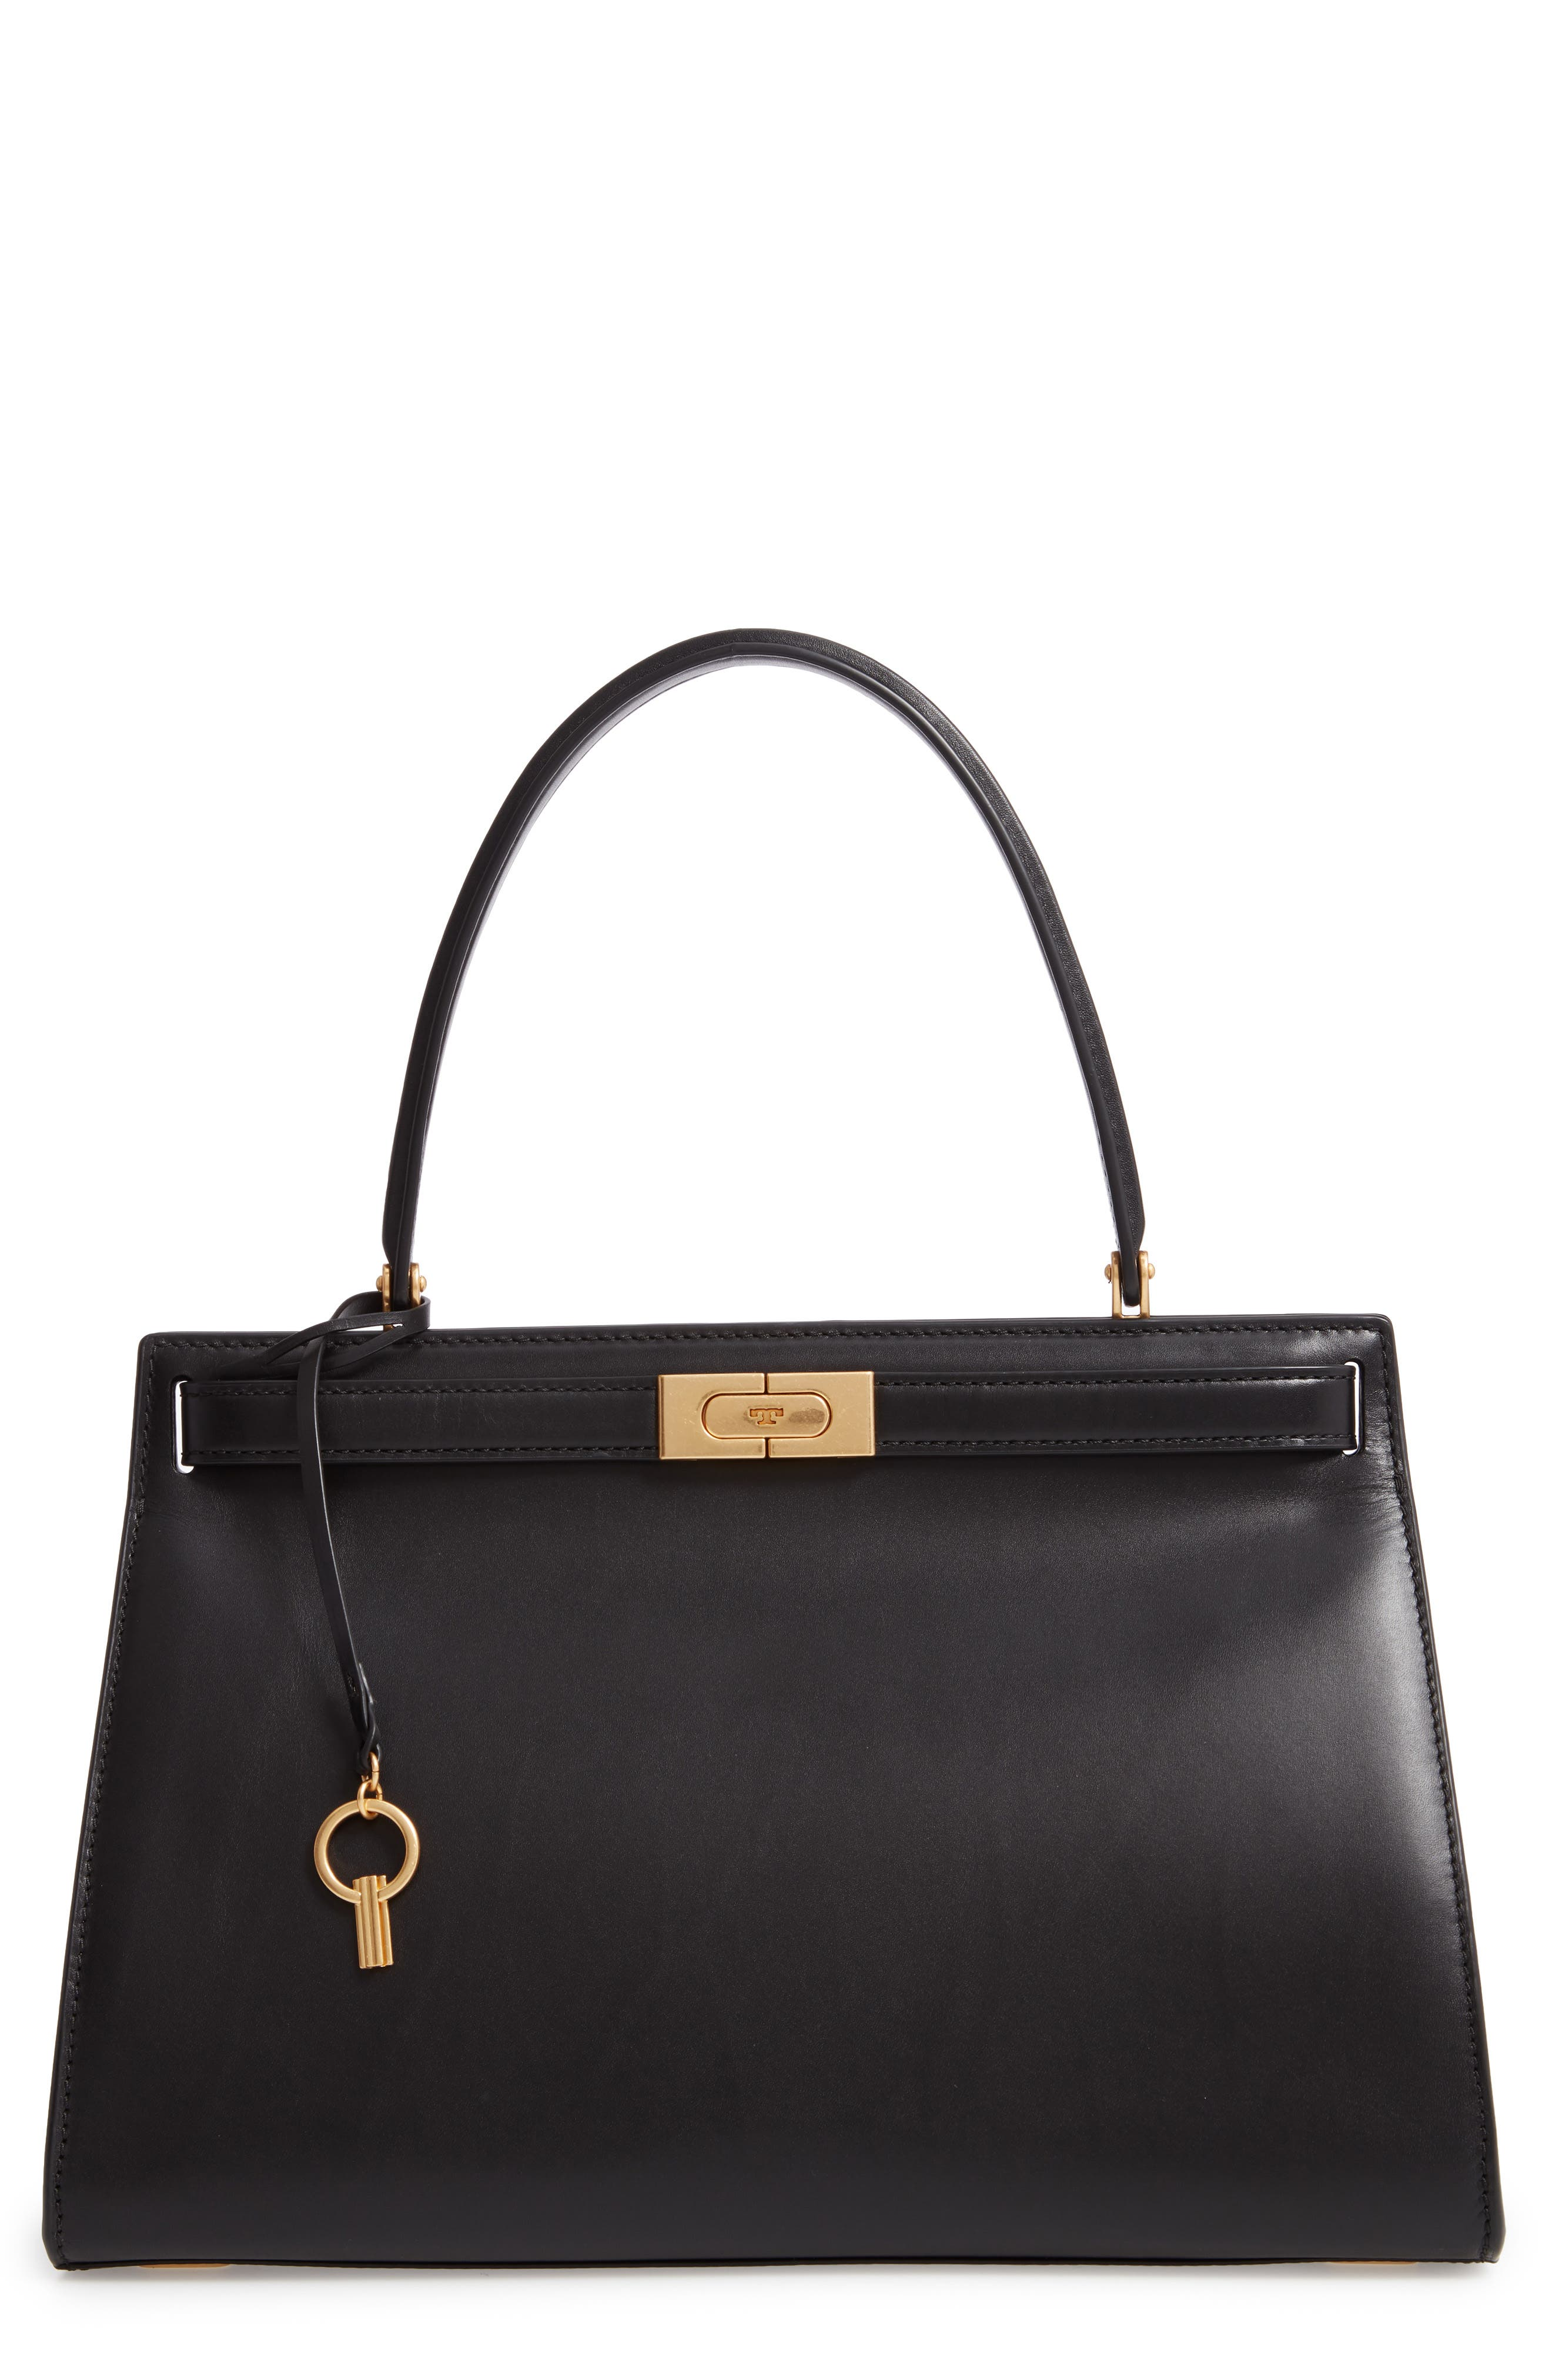 TORY BURCH Lee Radziwill Leather Bag, Main, color, 001